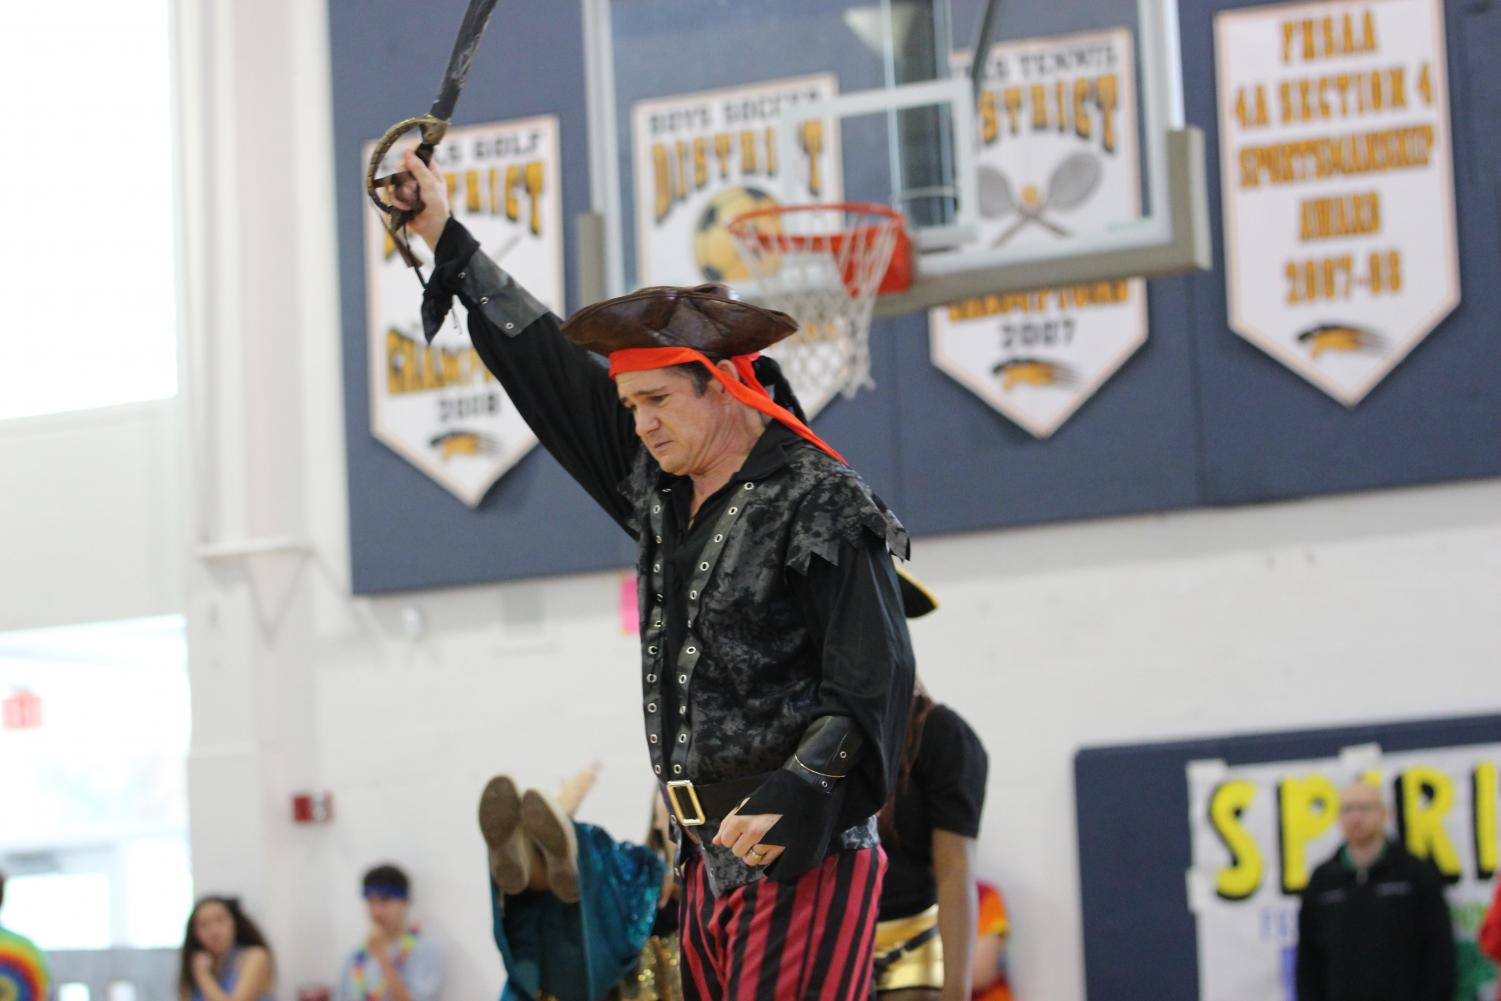 """After being asked by his senior students, social studies teacher David Pardo took on the role of a pirate during the senior skit at Pep Rally. """"I was shocked at how much time and energy was put into [Pep Rally], both by the students and the staff,"""" Mr. Pardo said. Although he enjoyed participating, Mr. Pardo hopes just to be a part of the audience in next year's Pep Rally."""